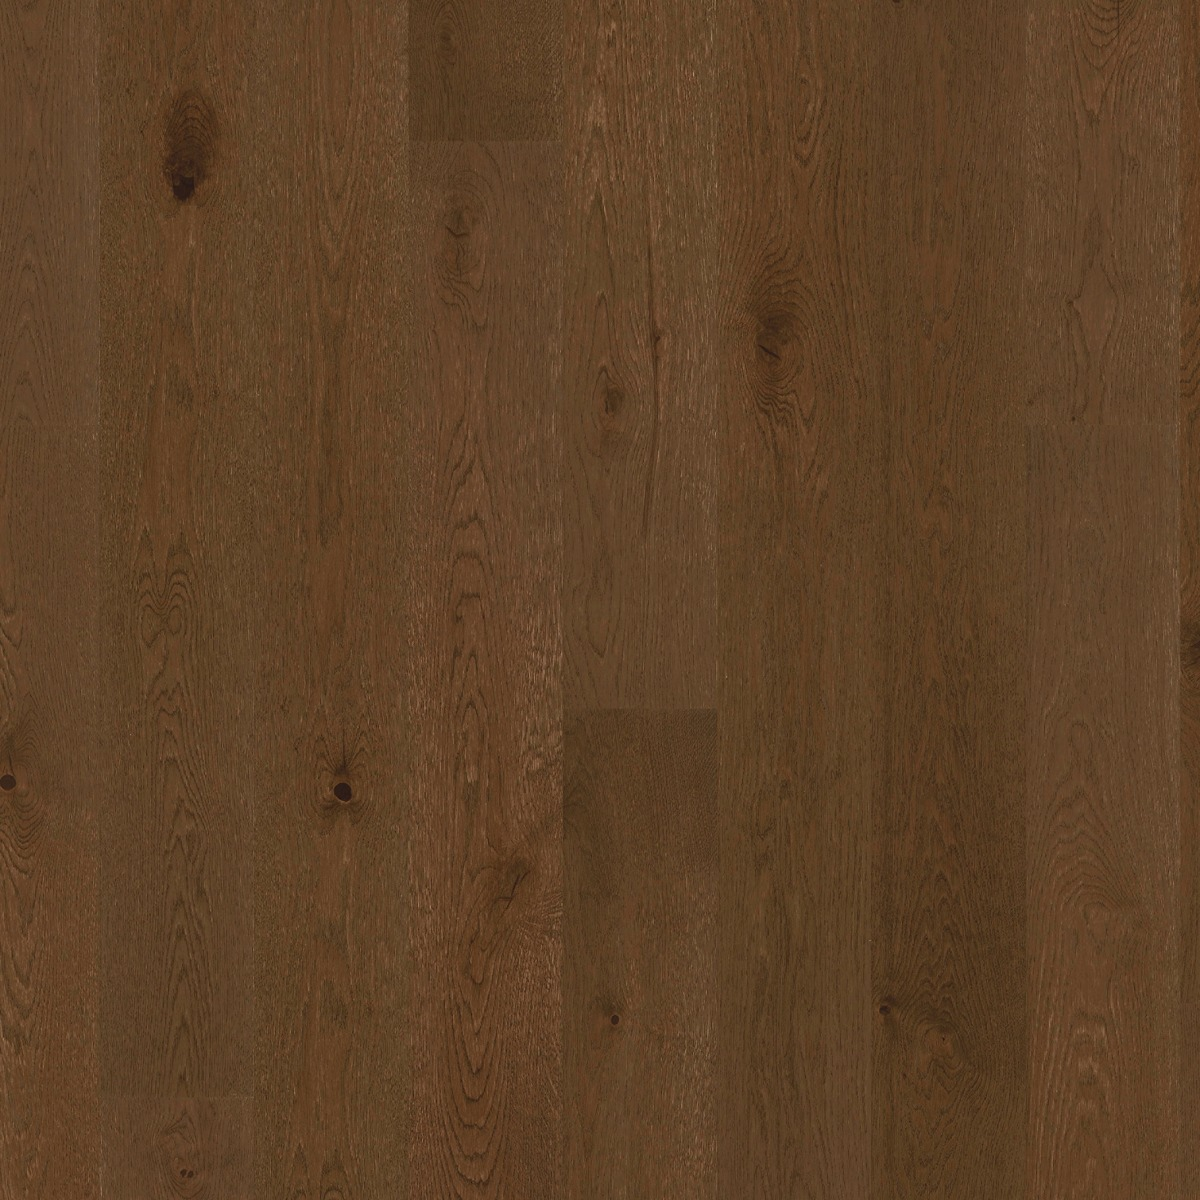 Tarkett Shade 14 Ek Italian Brown Plank - Mattlack - Parkettgolv